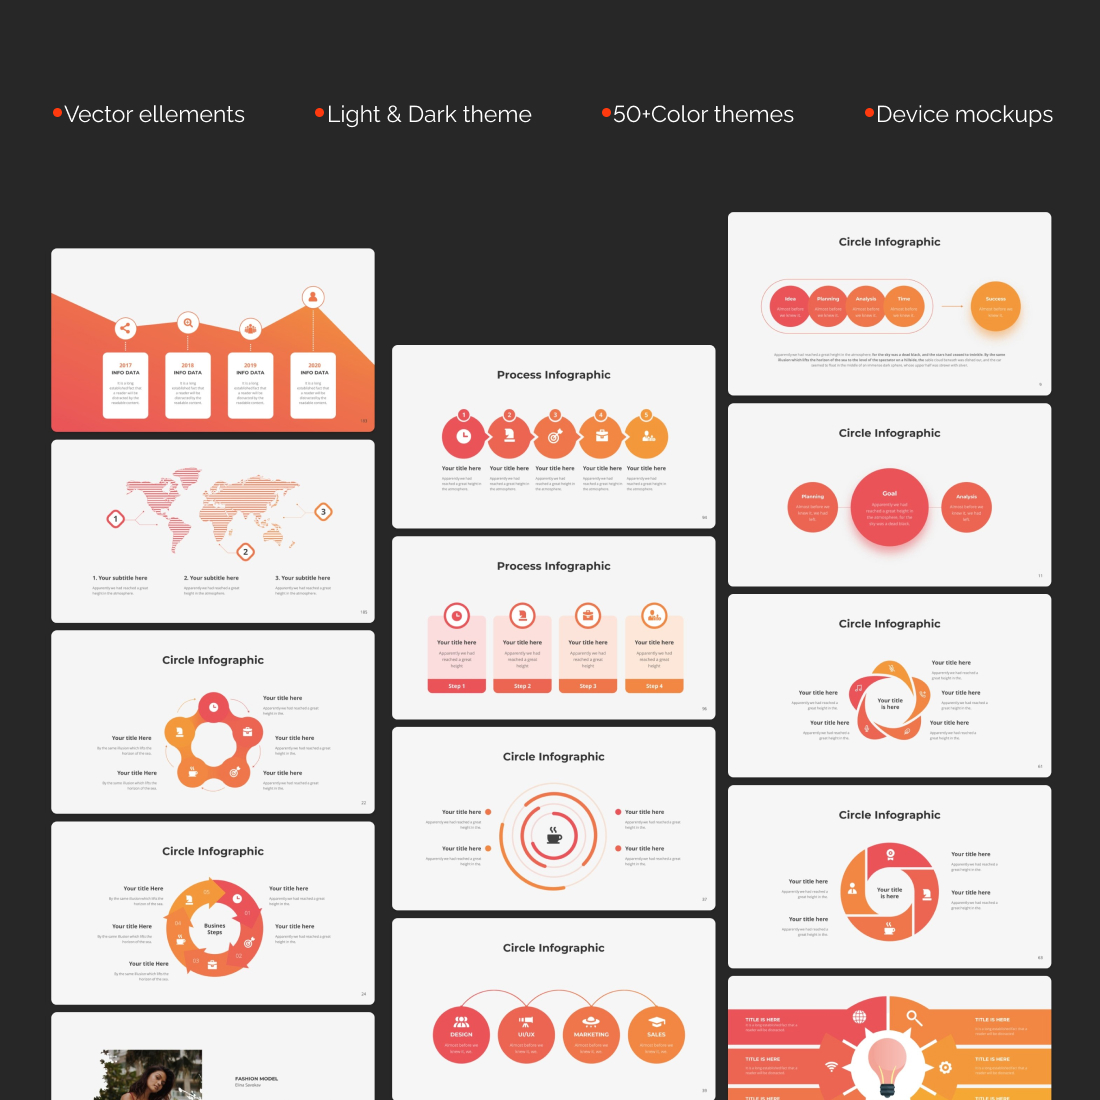 Massive Infographic Template cover image.